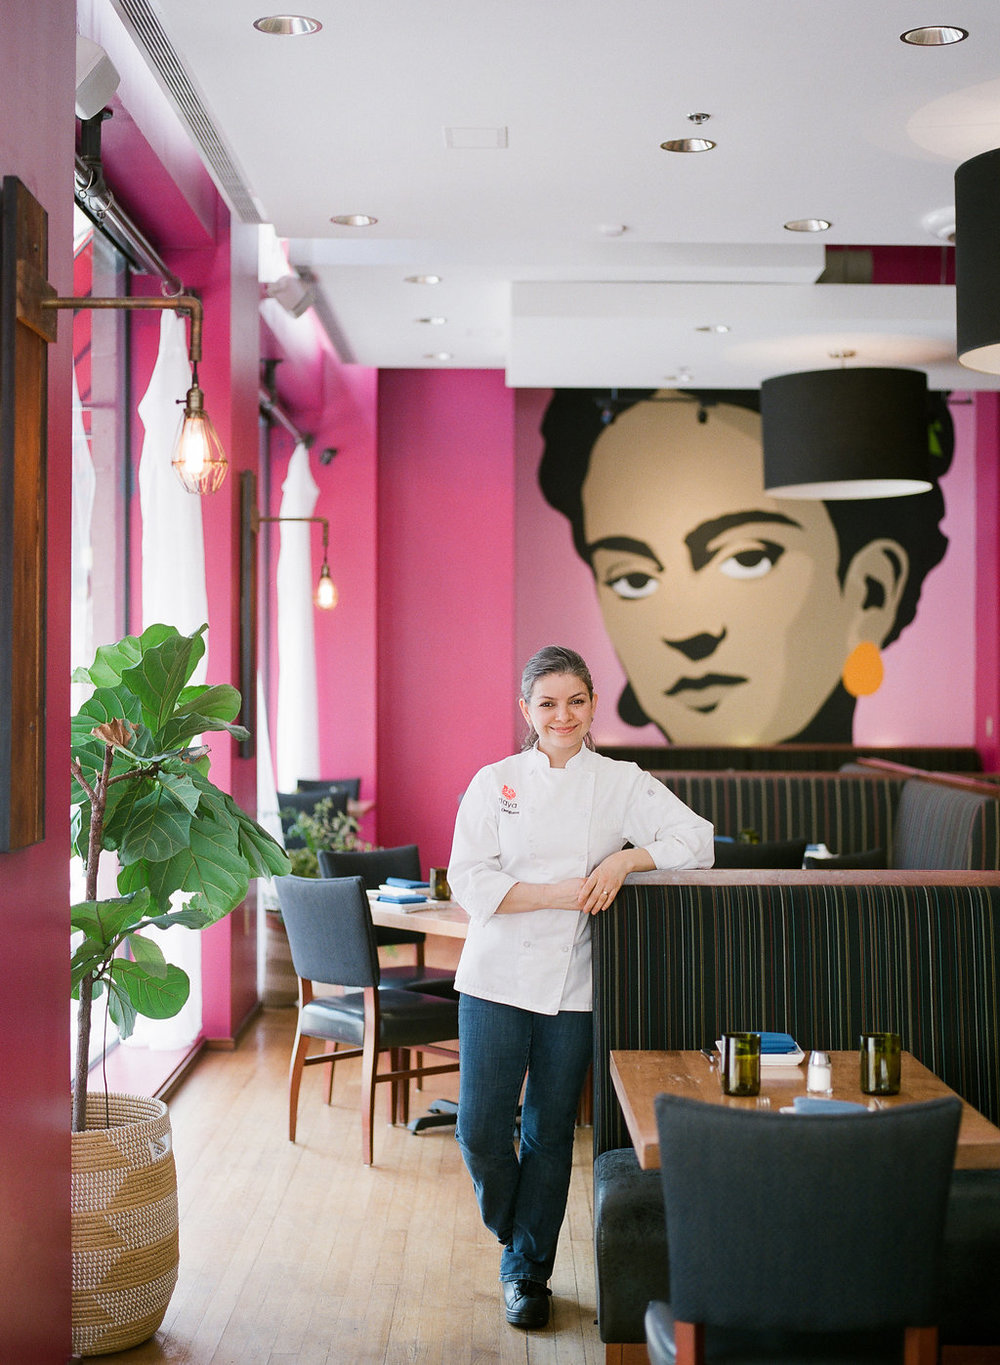 Picture of Maria Oseguera, business owner of Maya on Grace. Maria is leaning against with restaurant booth with the image of Frida Kahlo.